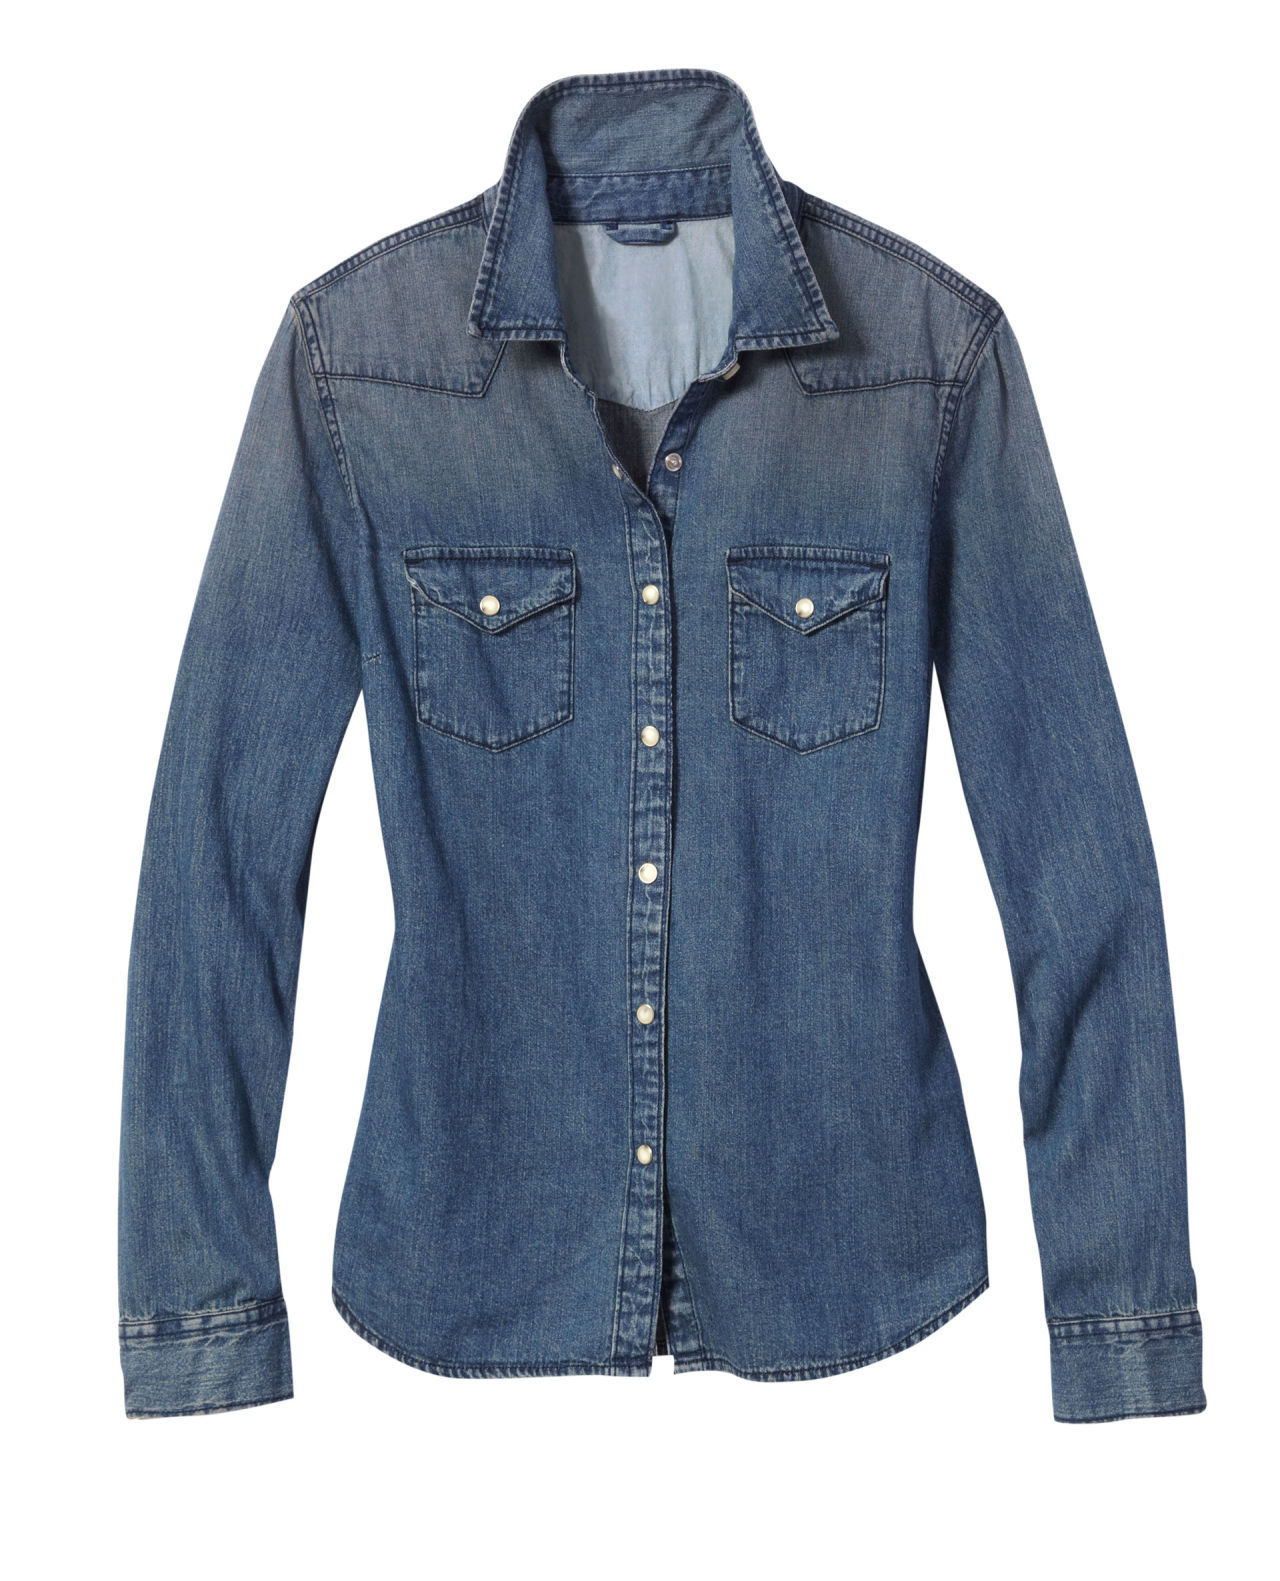 How To Wear a Denim Shirt - Outfit Ideas for Denim Shirts